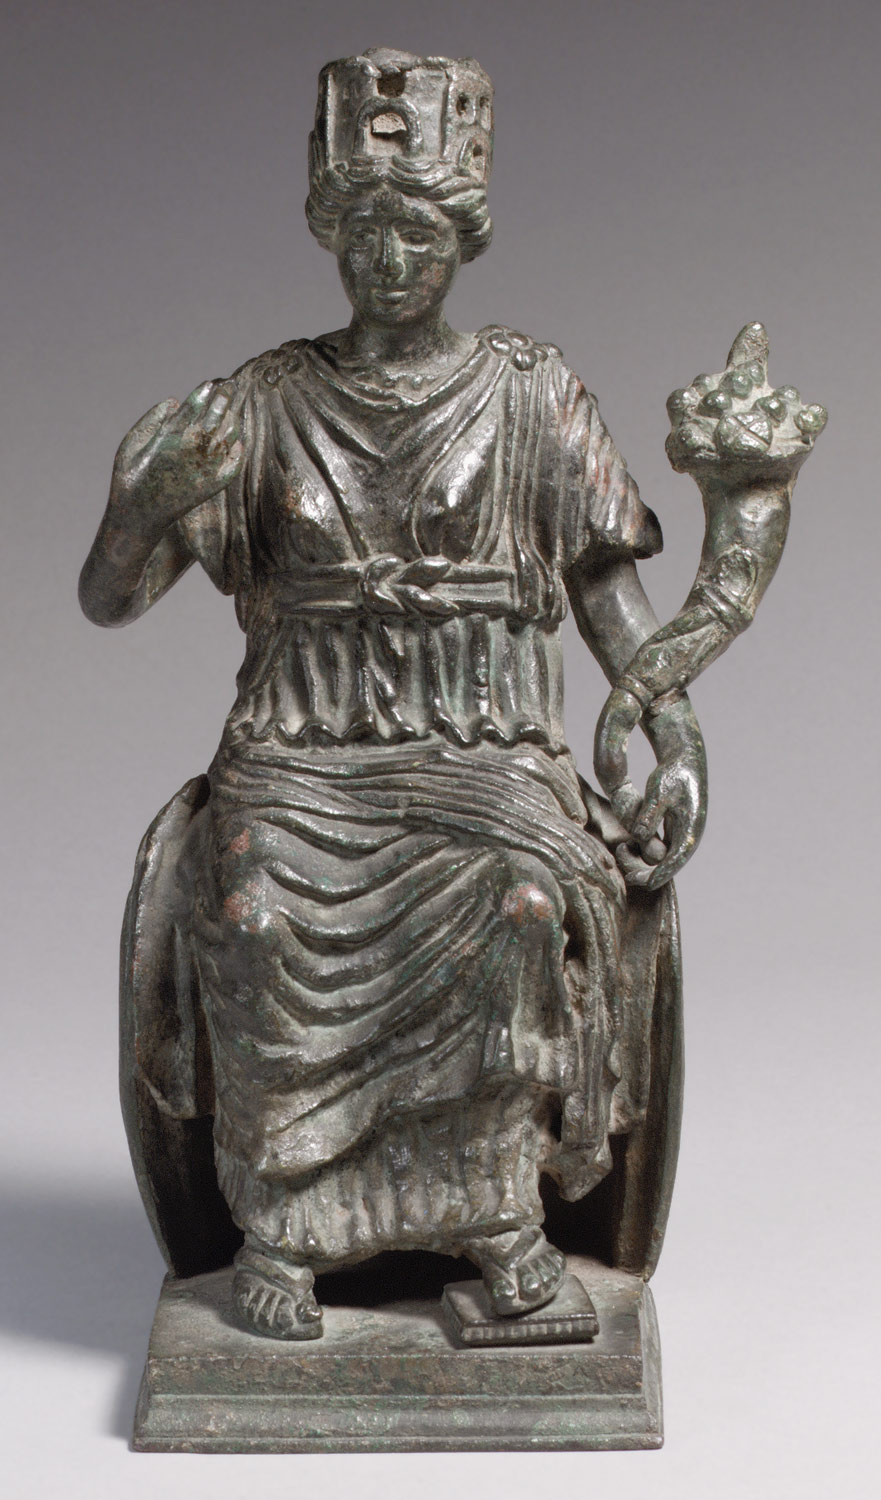 Statuette of a Personification of a City